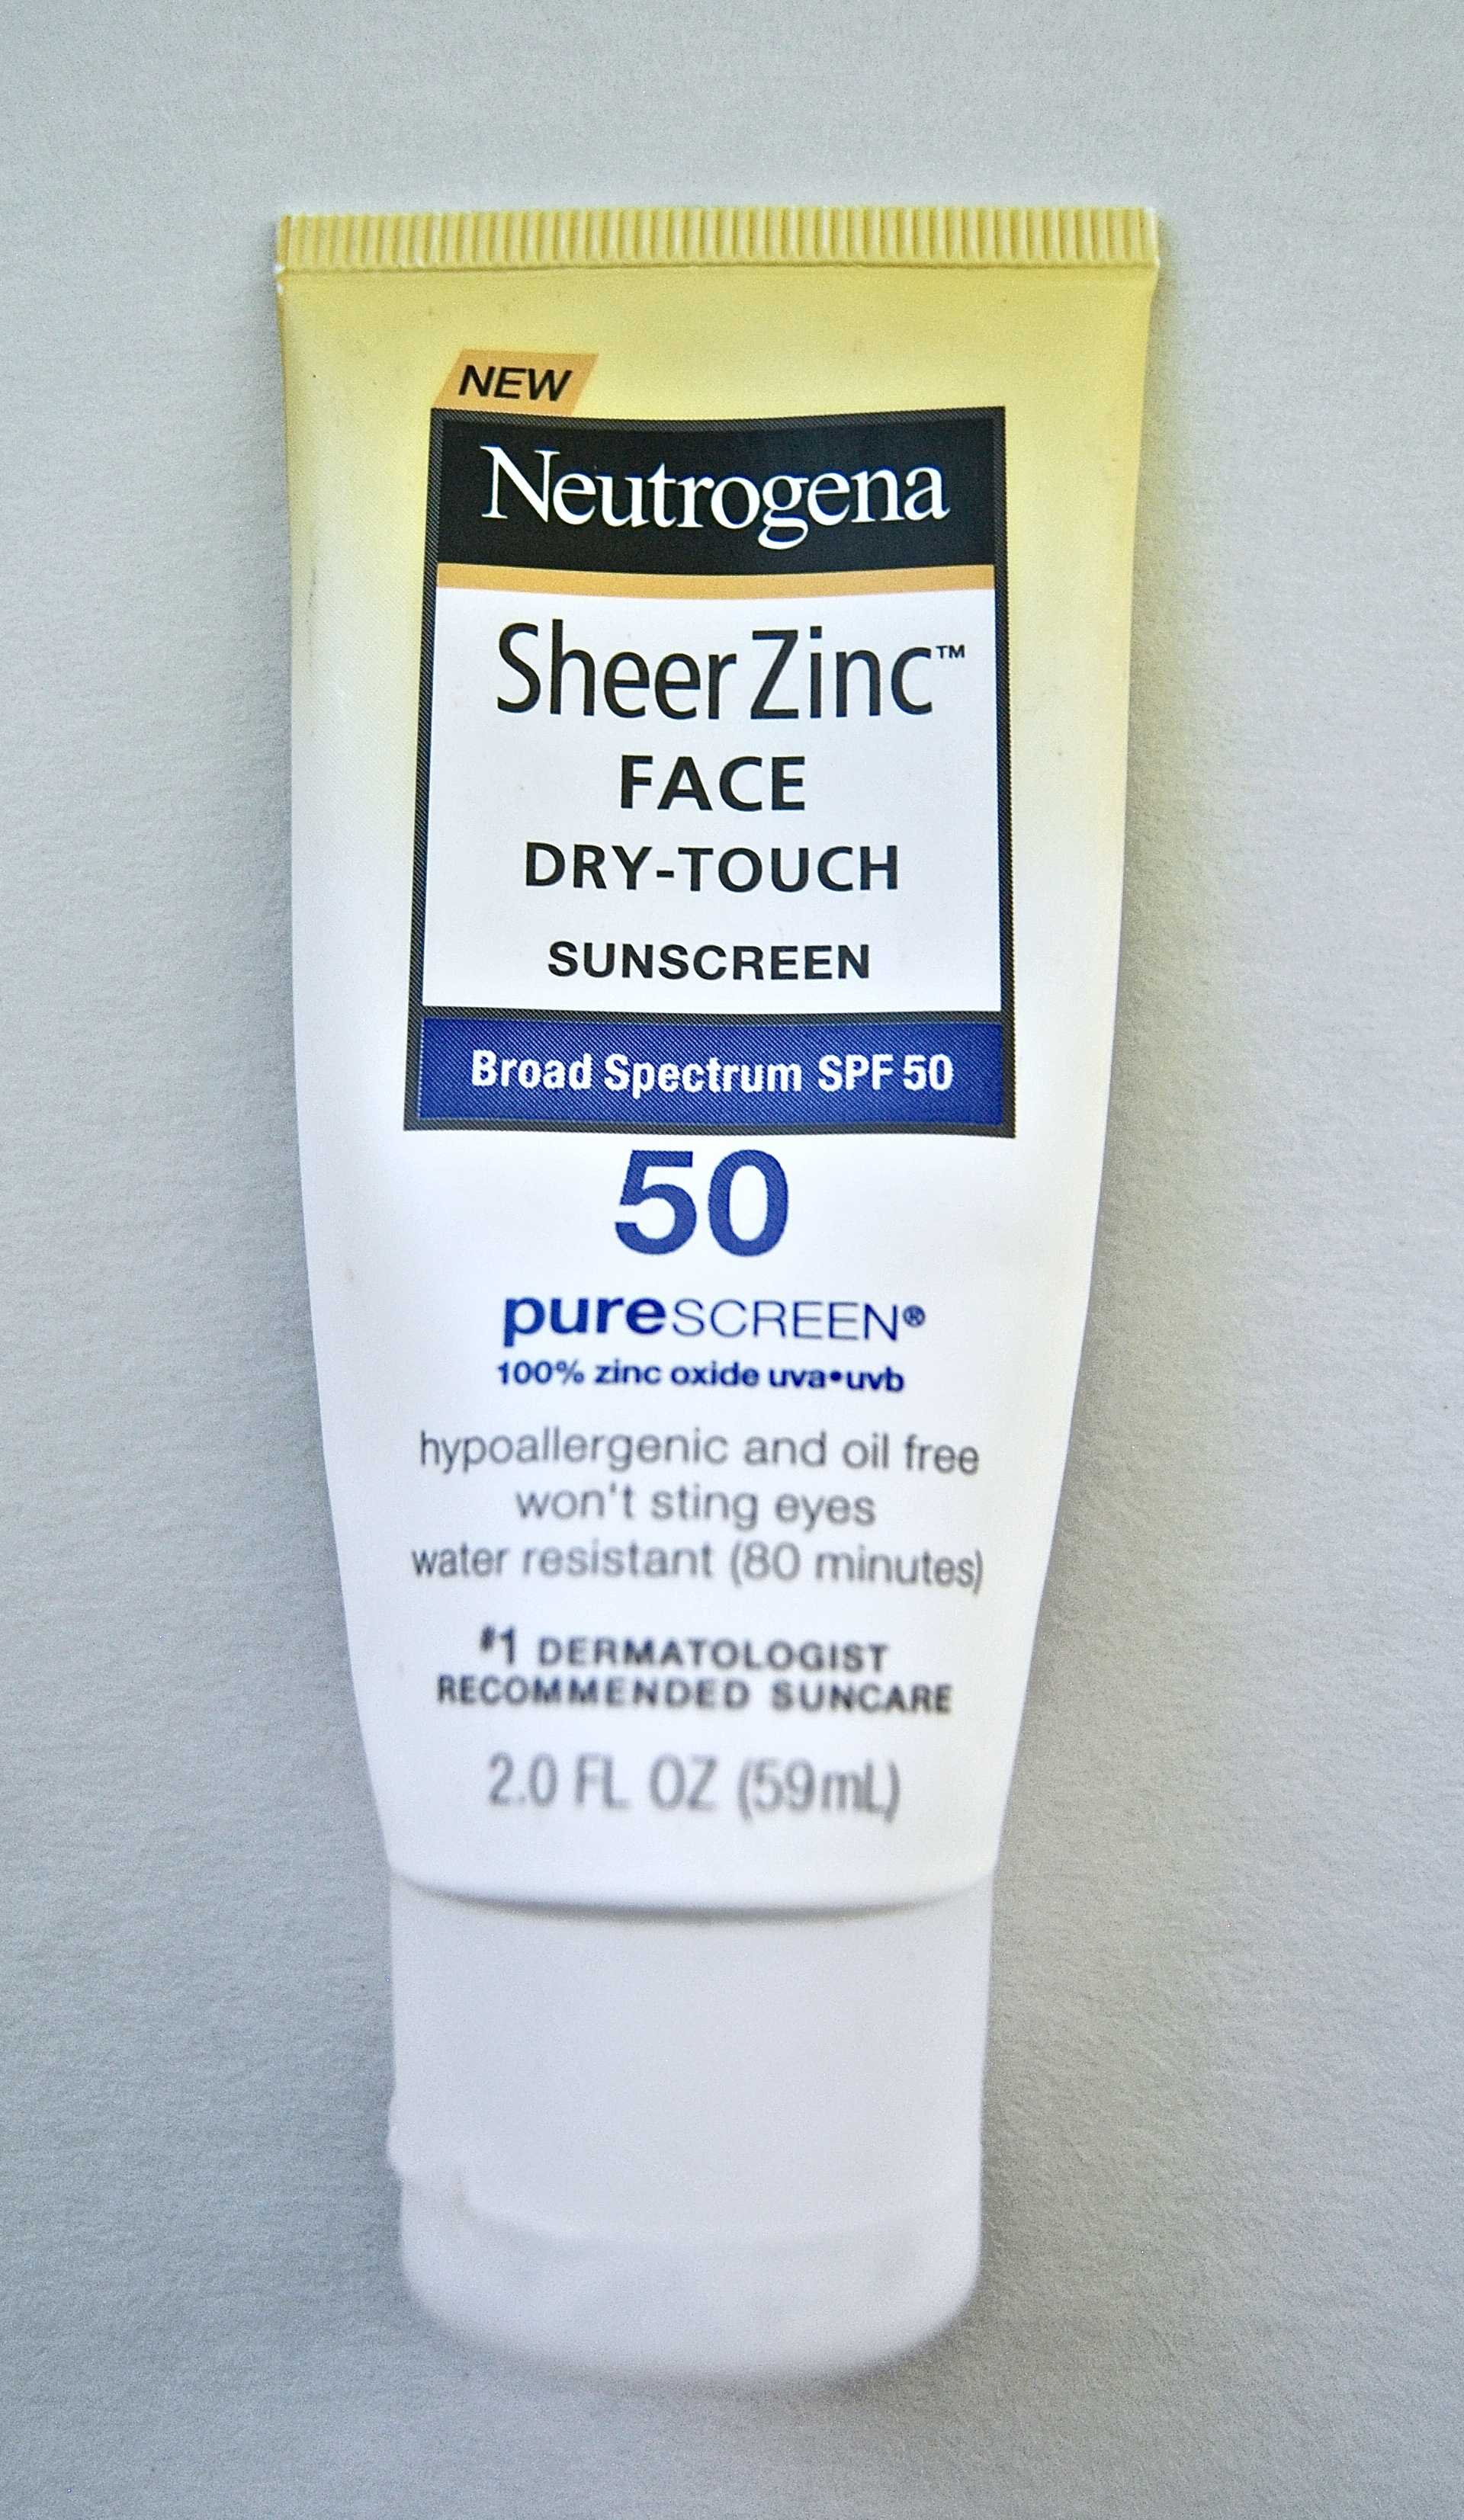 Neutrogena® SheerZinc™Dry Touch Sunscreen - This stuff is so protective because it's formulated with over 21% zinc oxide - meaning it's thick & pasty, but offers some of the best photoprotection out there. Use this stuff on days you know your UV exposure will be increased.